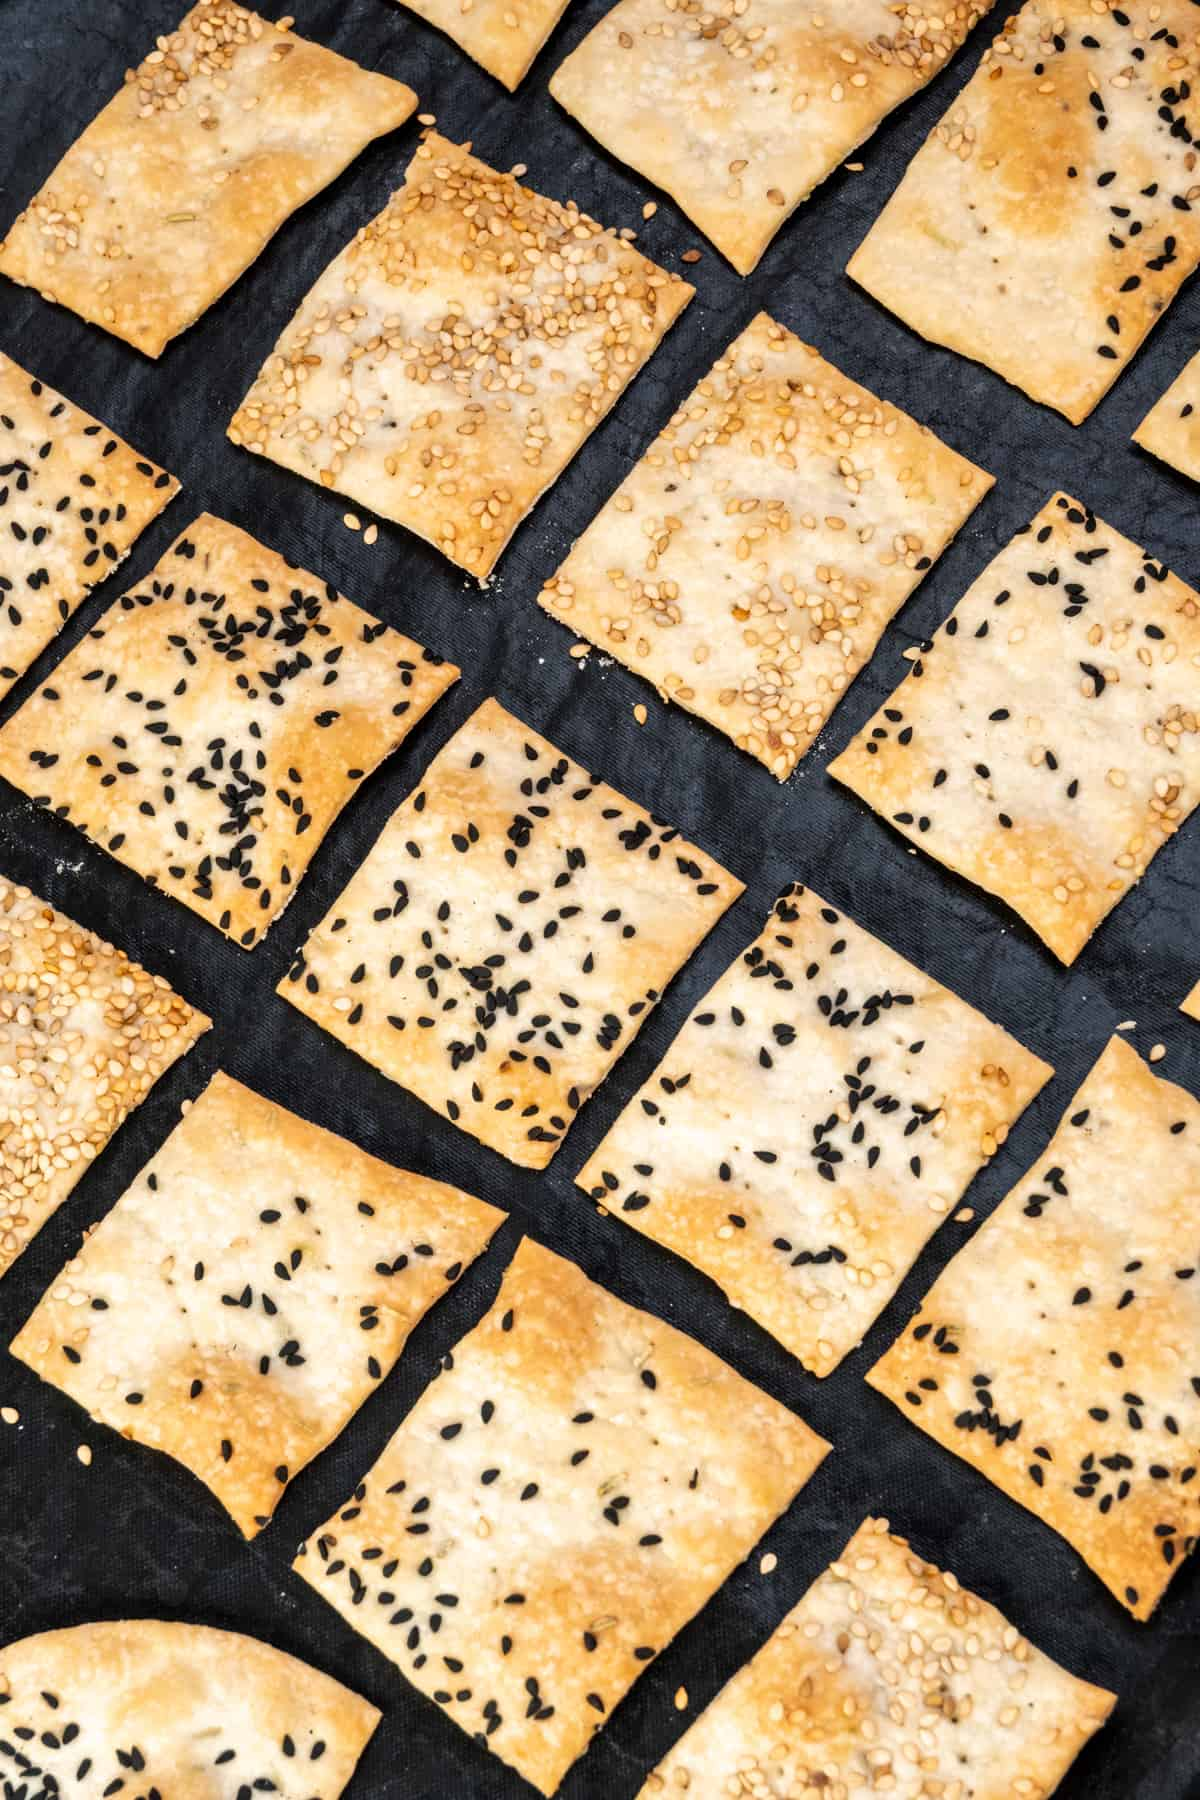 Rows of freshly baked crackers topped with sesame and nigella seeds.